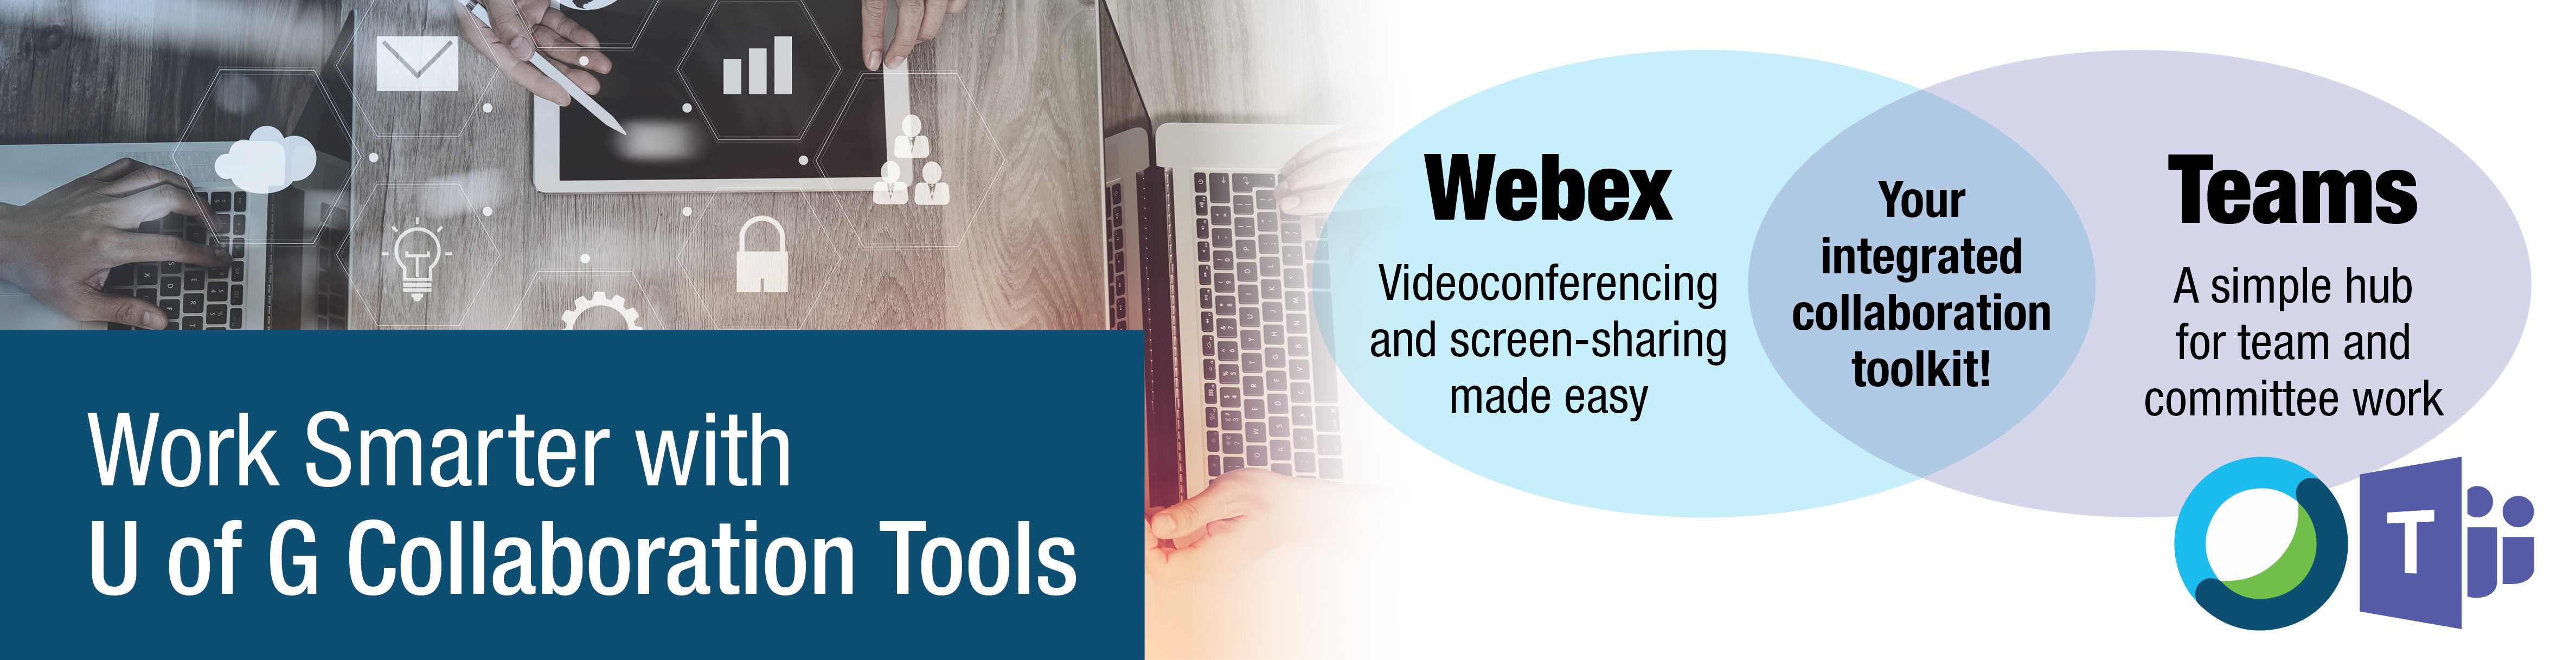 Work smarter with U of G collaboration tools - webex, videoconferencing and screen sharing made easy, and teams, a simple hub for team and committee work.